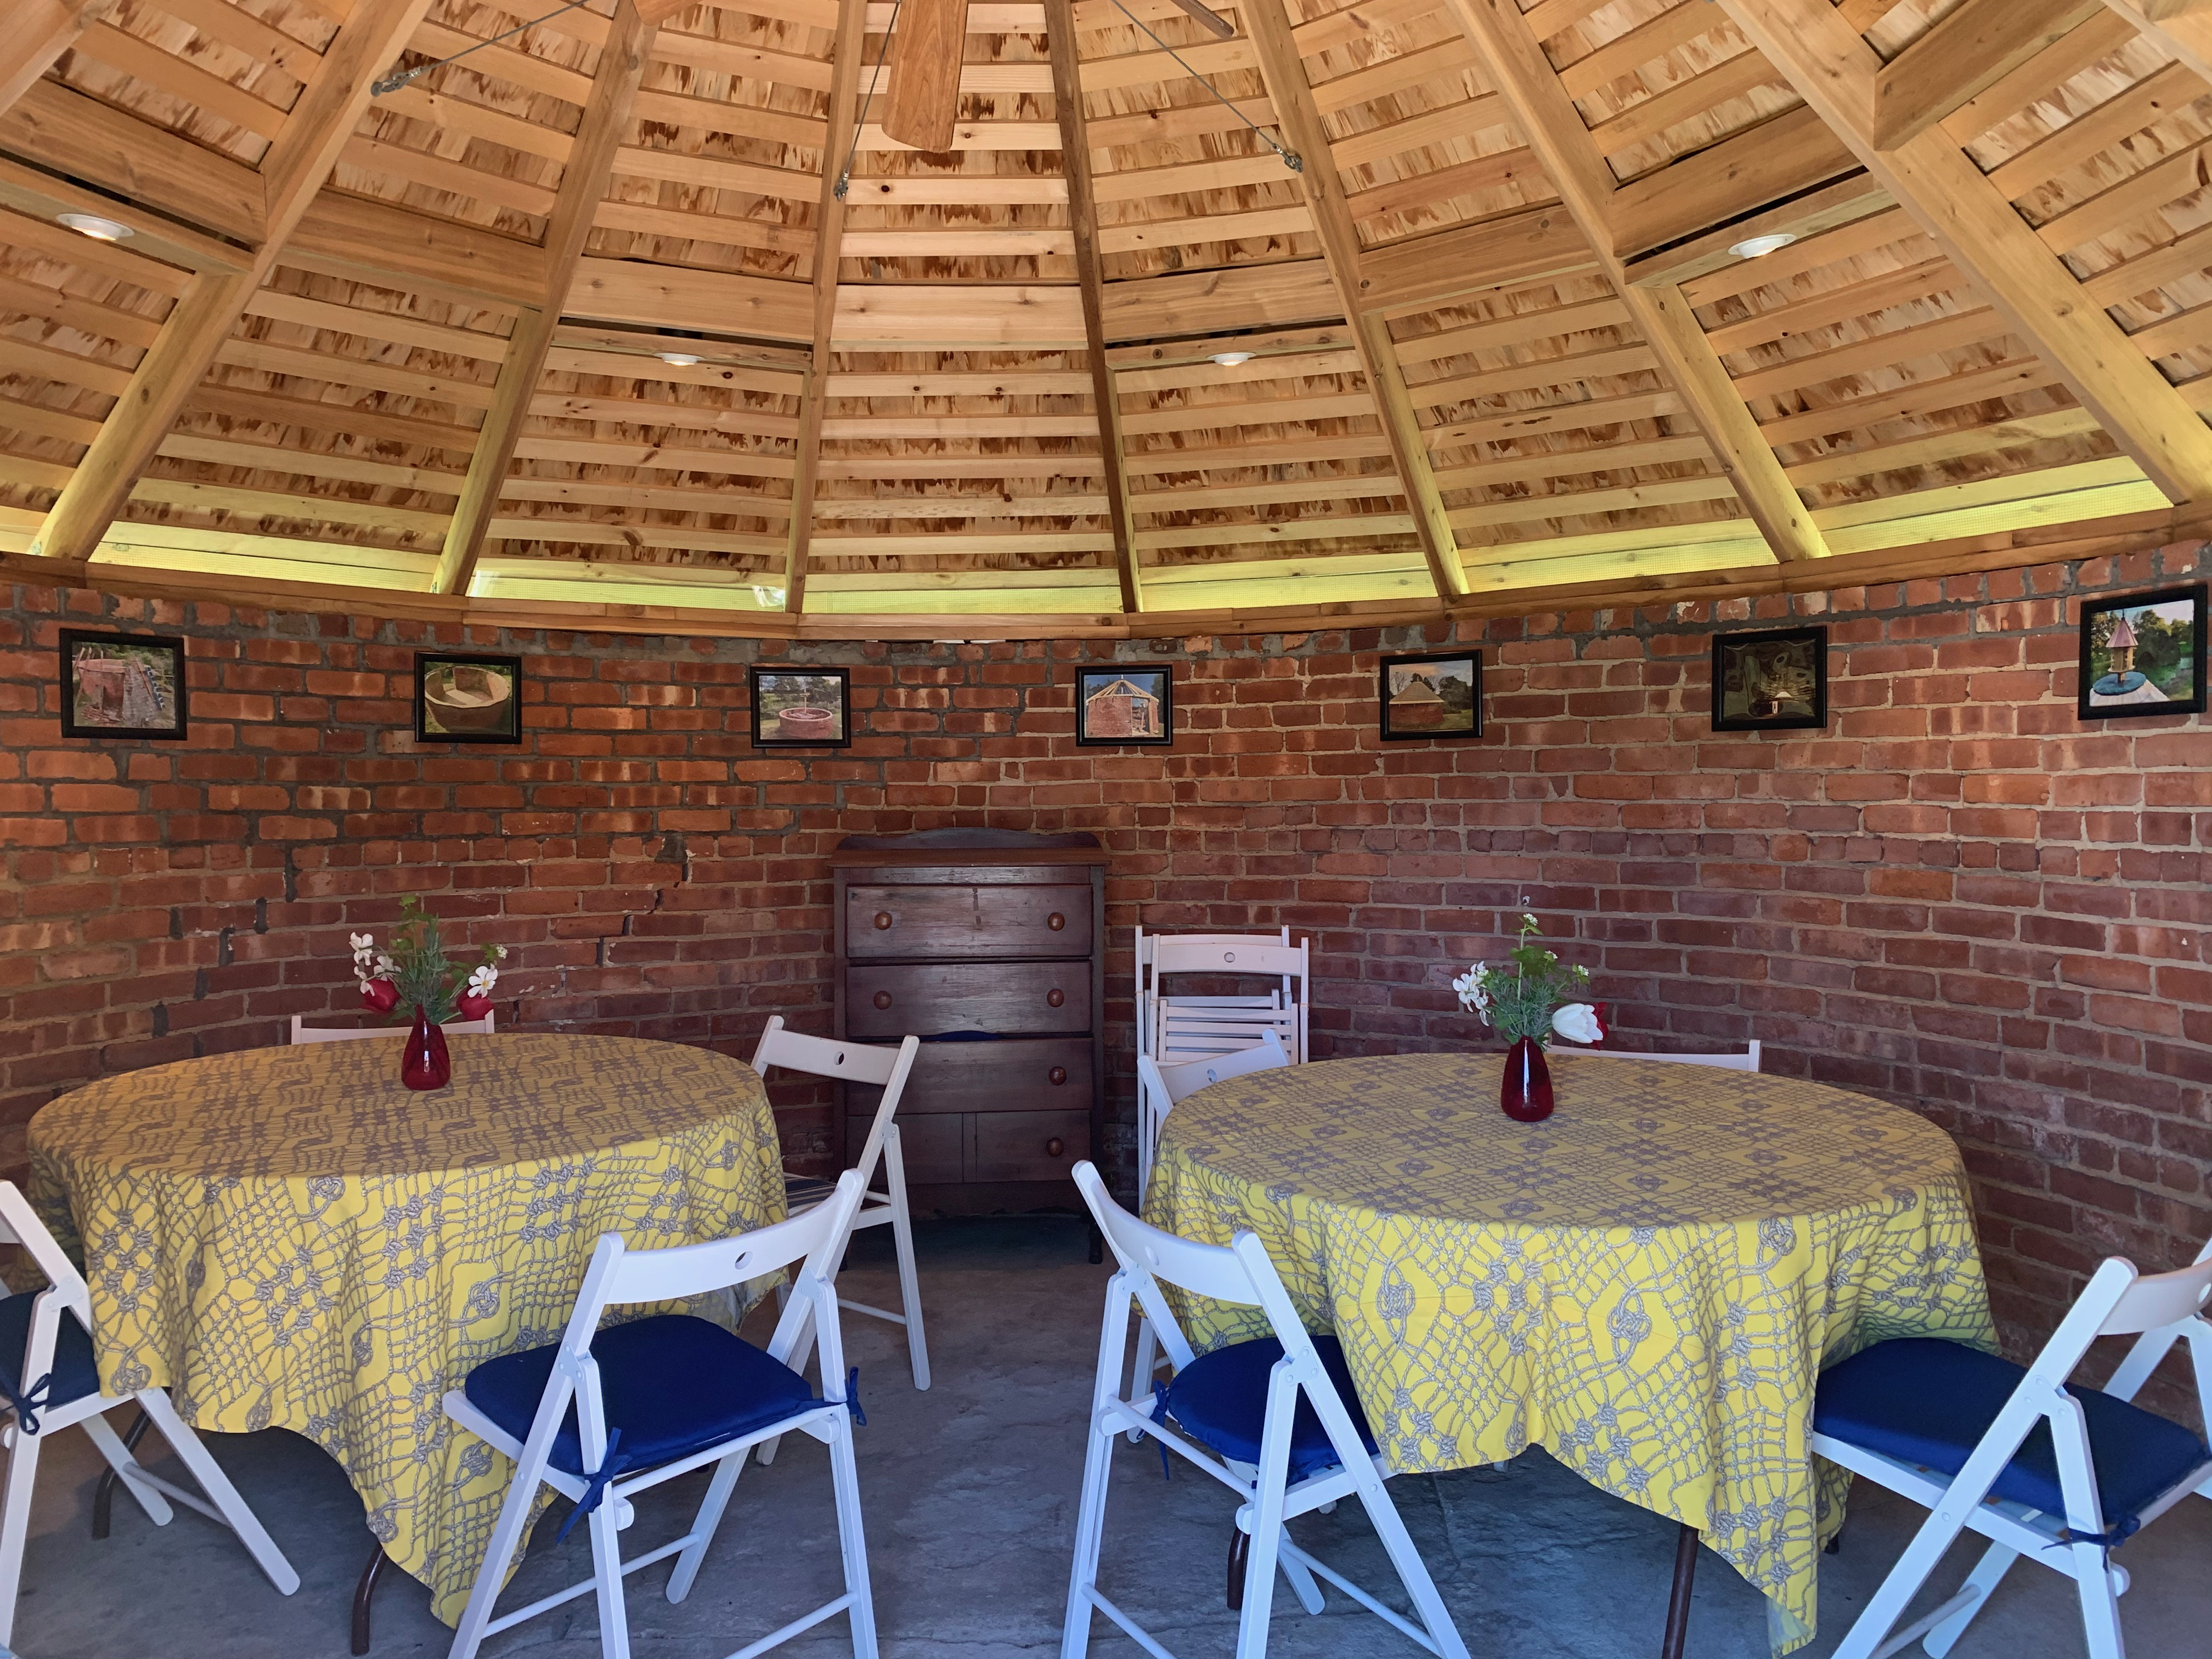 tables in Ice House building